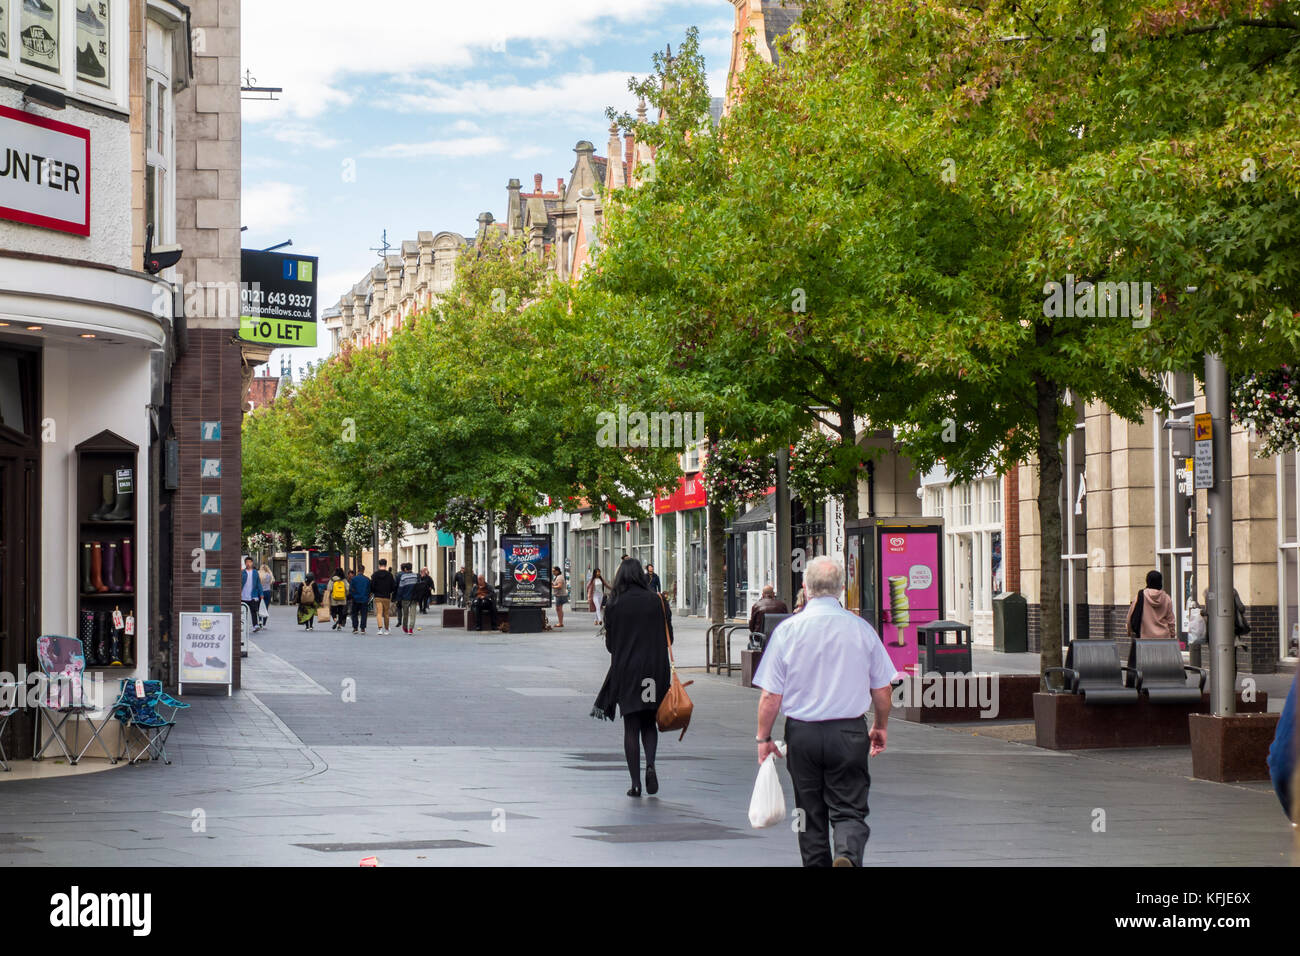 View of trees along High Street, Leicester, Leicestershire, East Midlands, UK - Stock Image